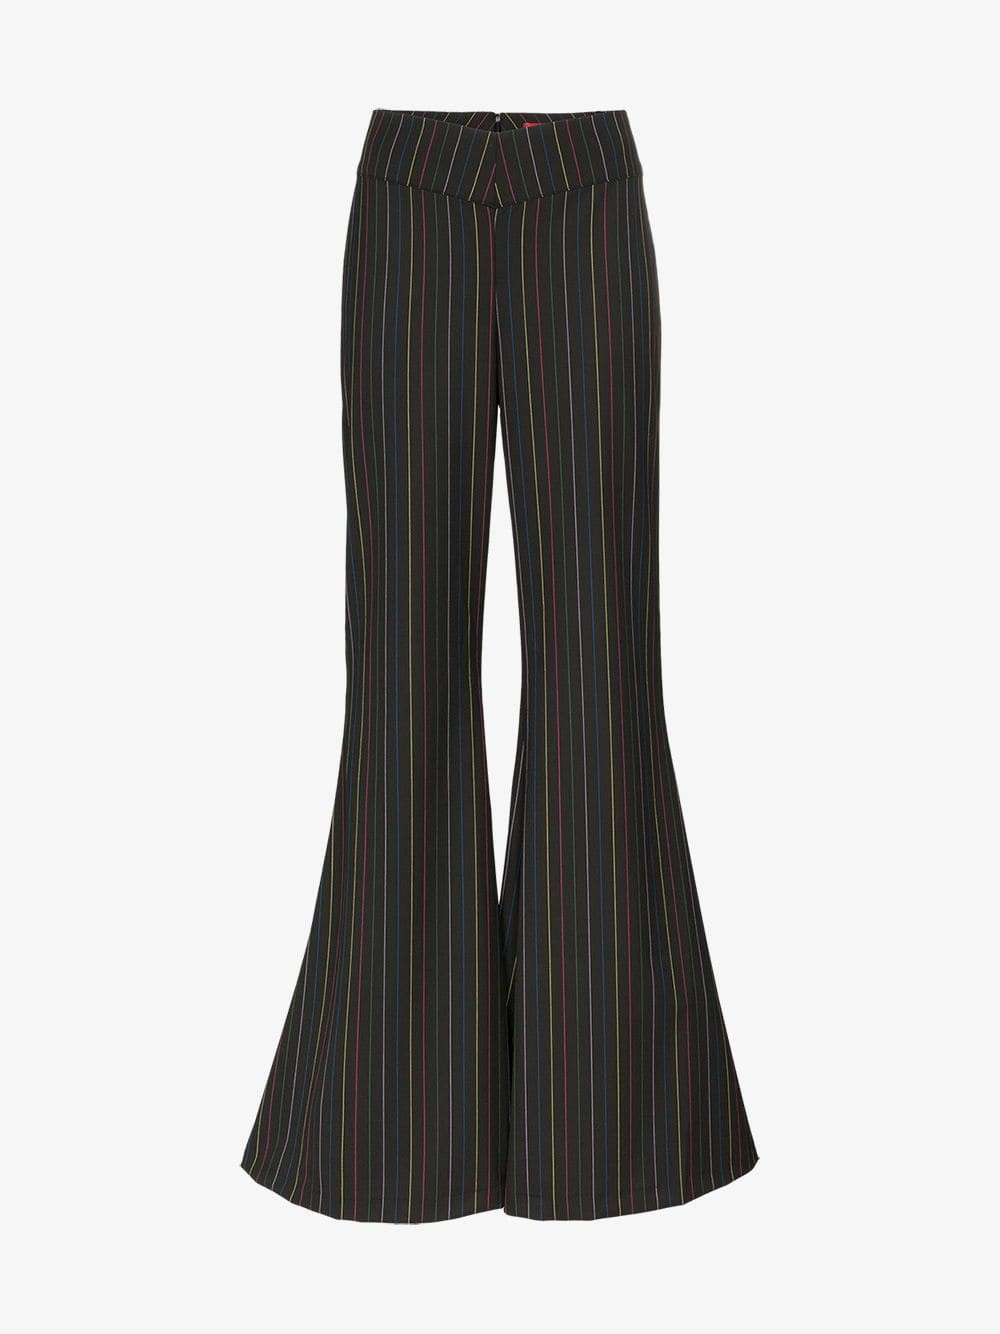 Staud rainbow striped wide flare trousers in black